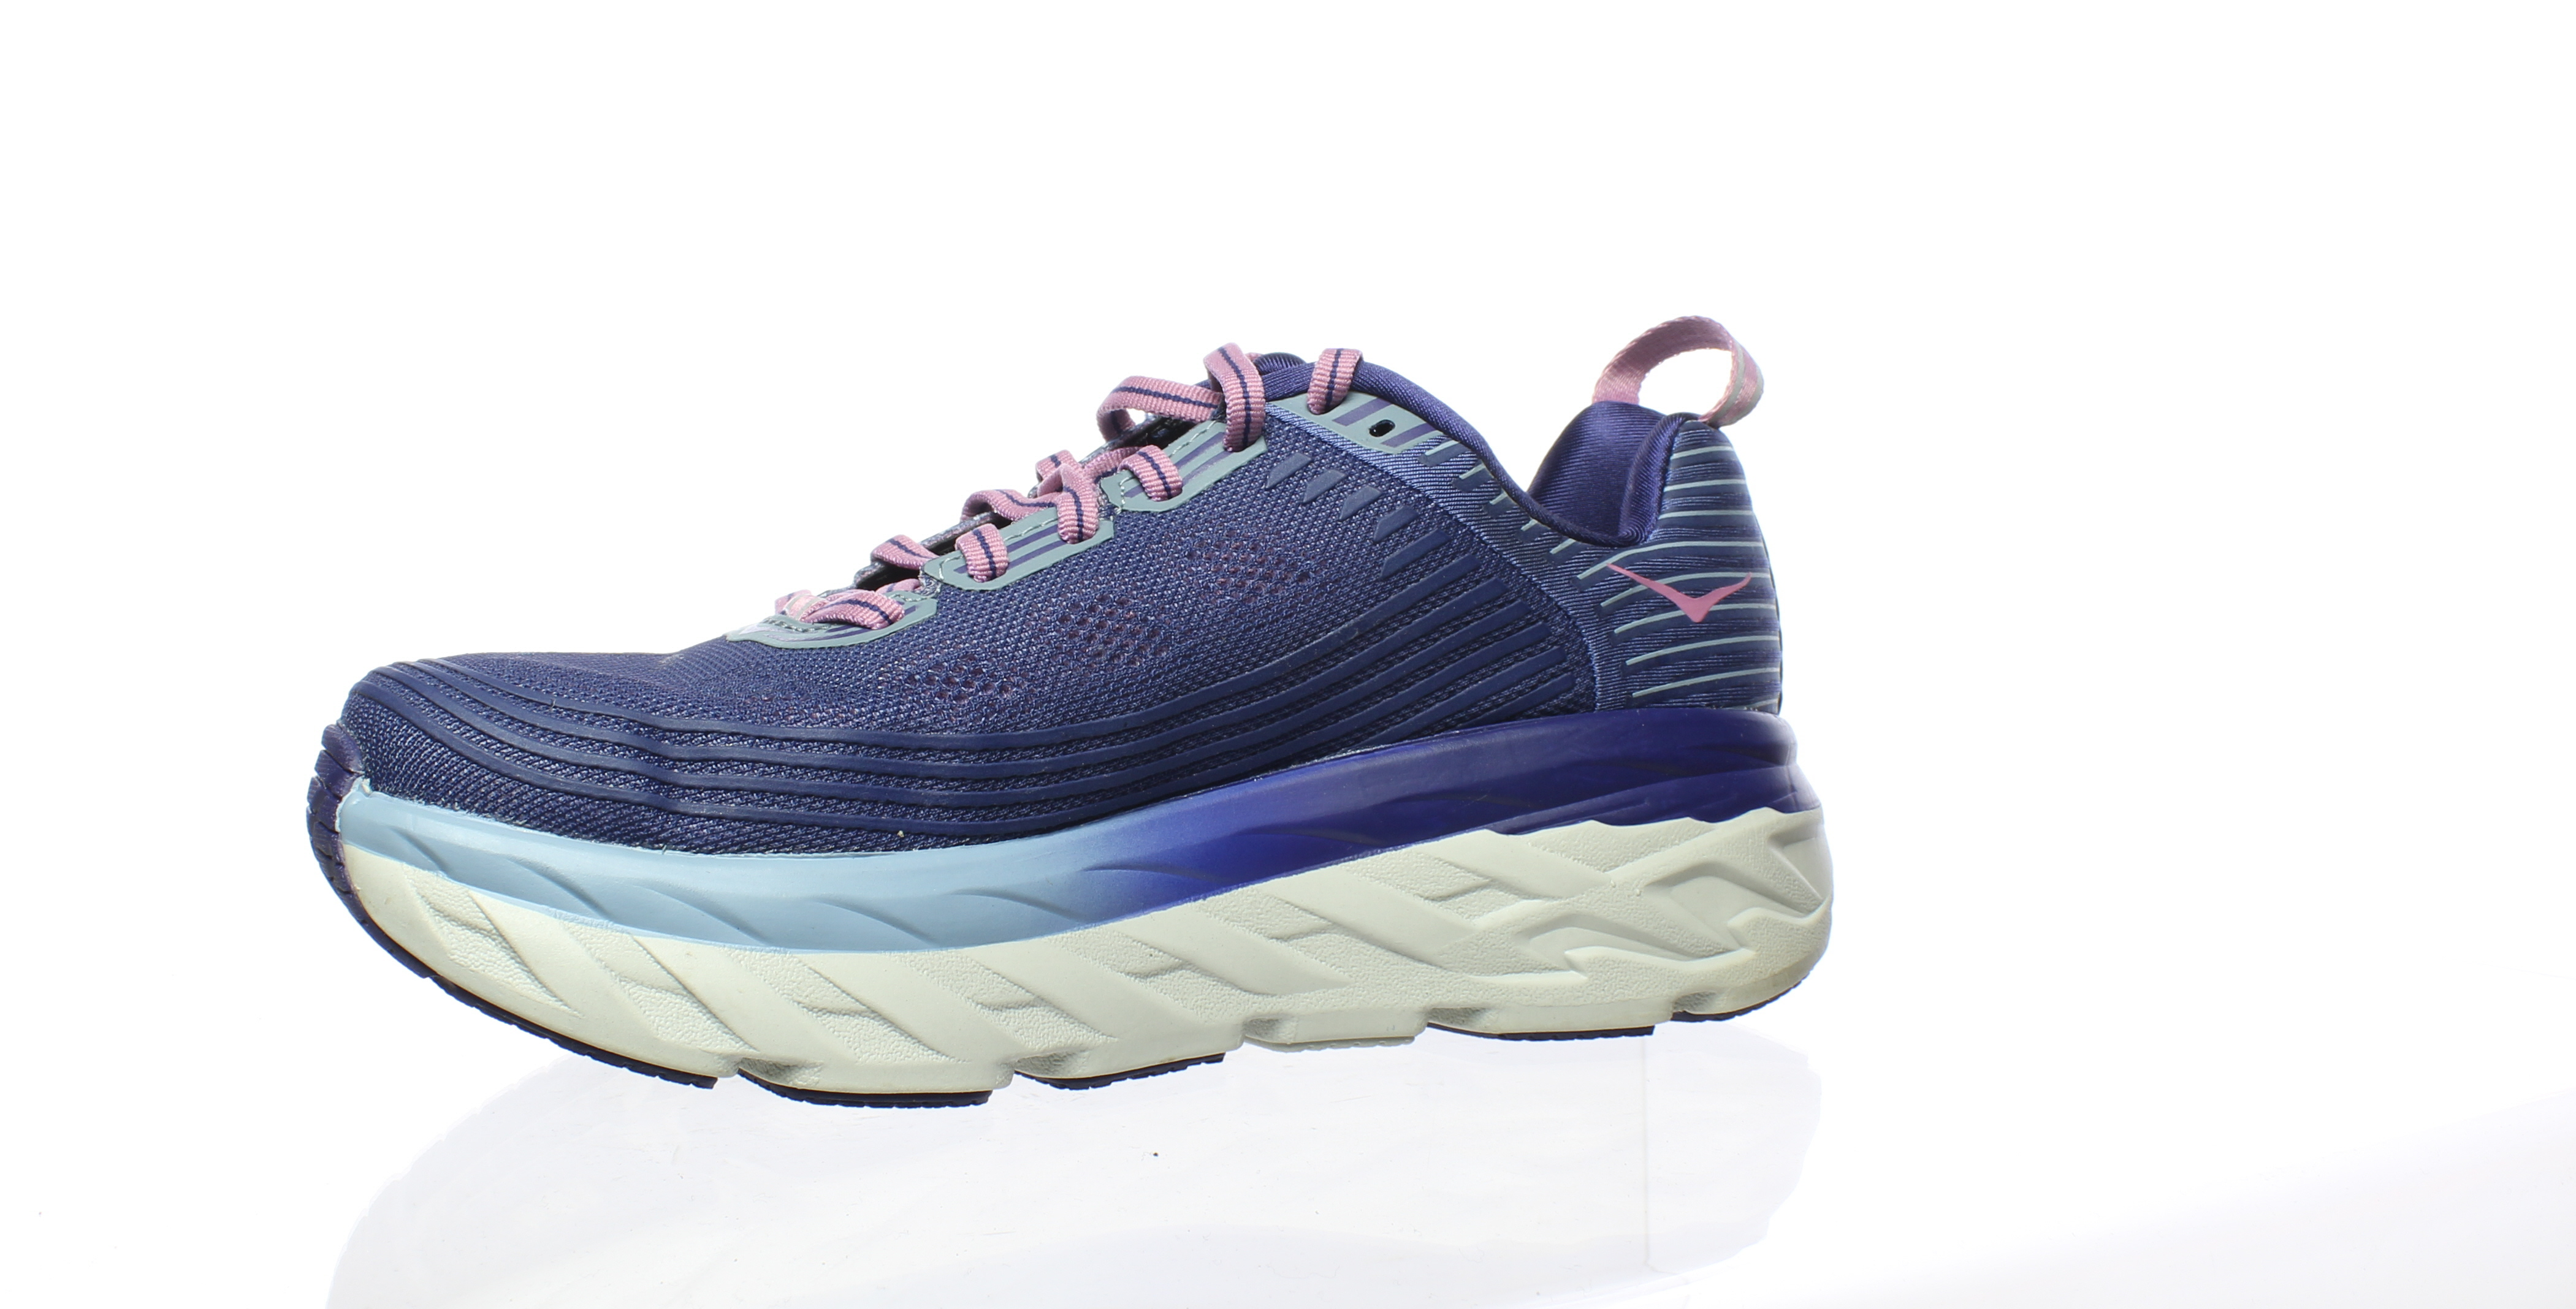 eb1c6abe243eaa Hoka One One Womens Bondi 6 Purple Running Shoes Size 7 (182842 ...